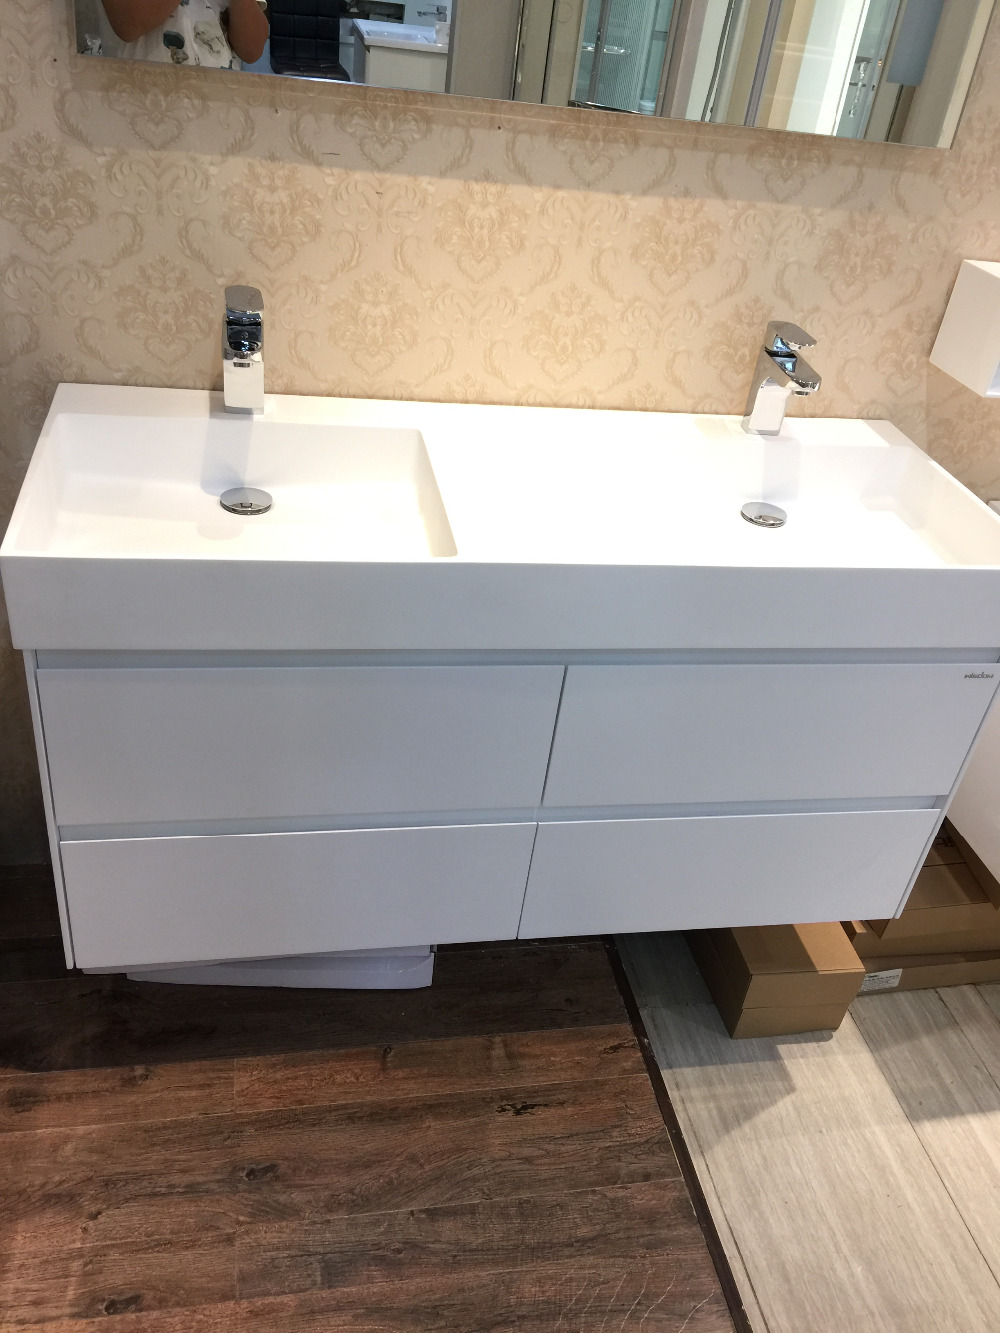 1200mm Wall Mounted Solid Surface Stone Double Sinks Soild Wood Bathroom Vanity Cloakroom Cabinet Oka Furniture 2090